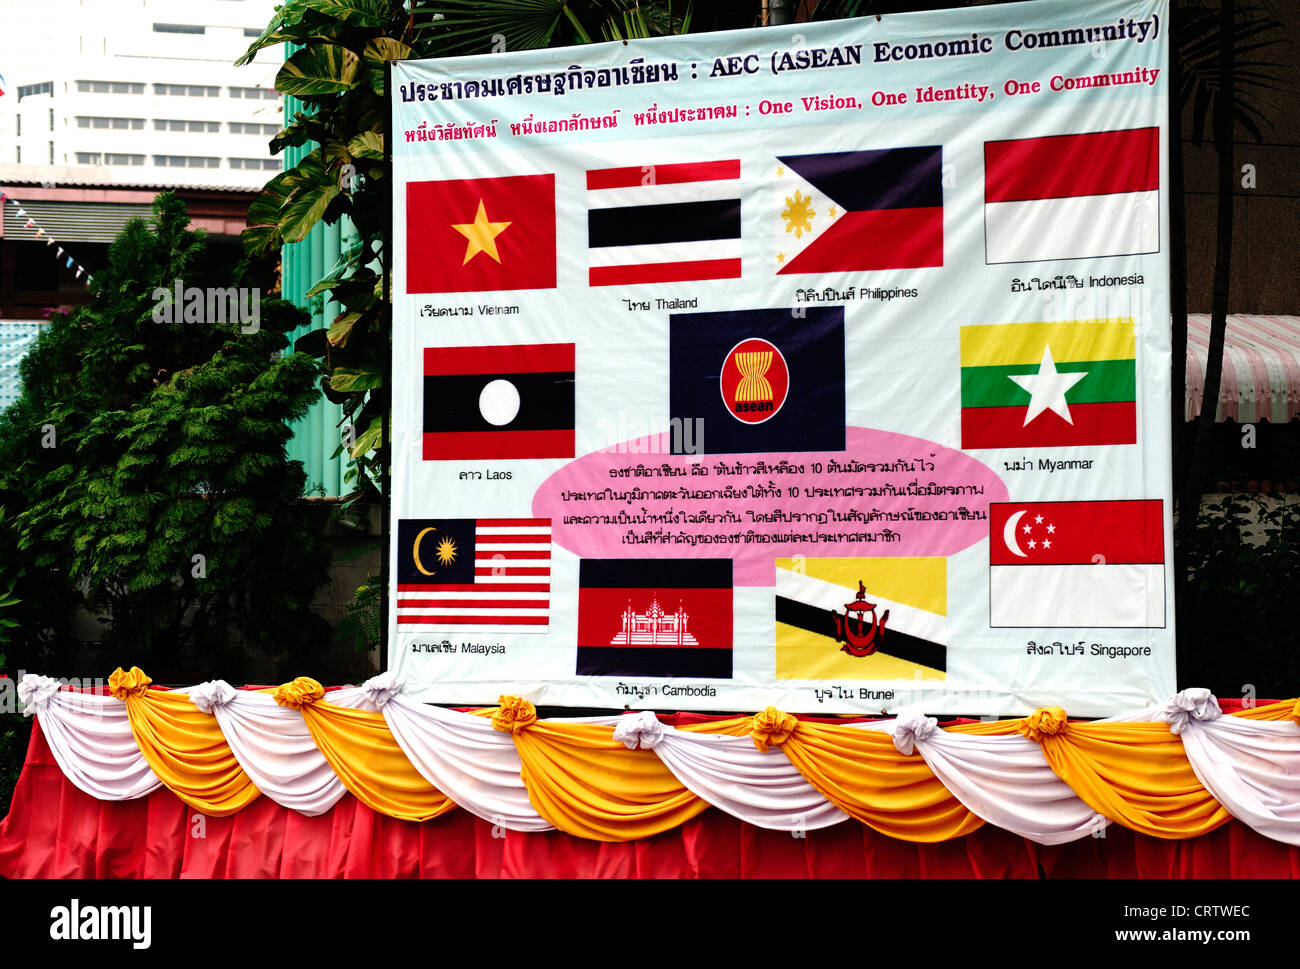 Flags on display of the AEC Asean economic Community, in Lumpini park, Bangkok. - Stock Image